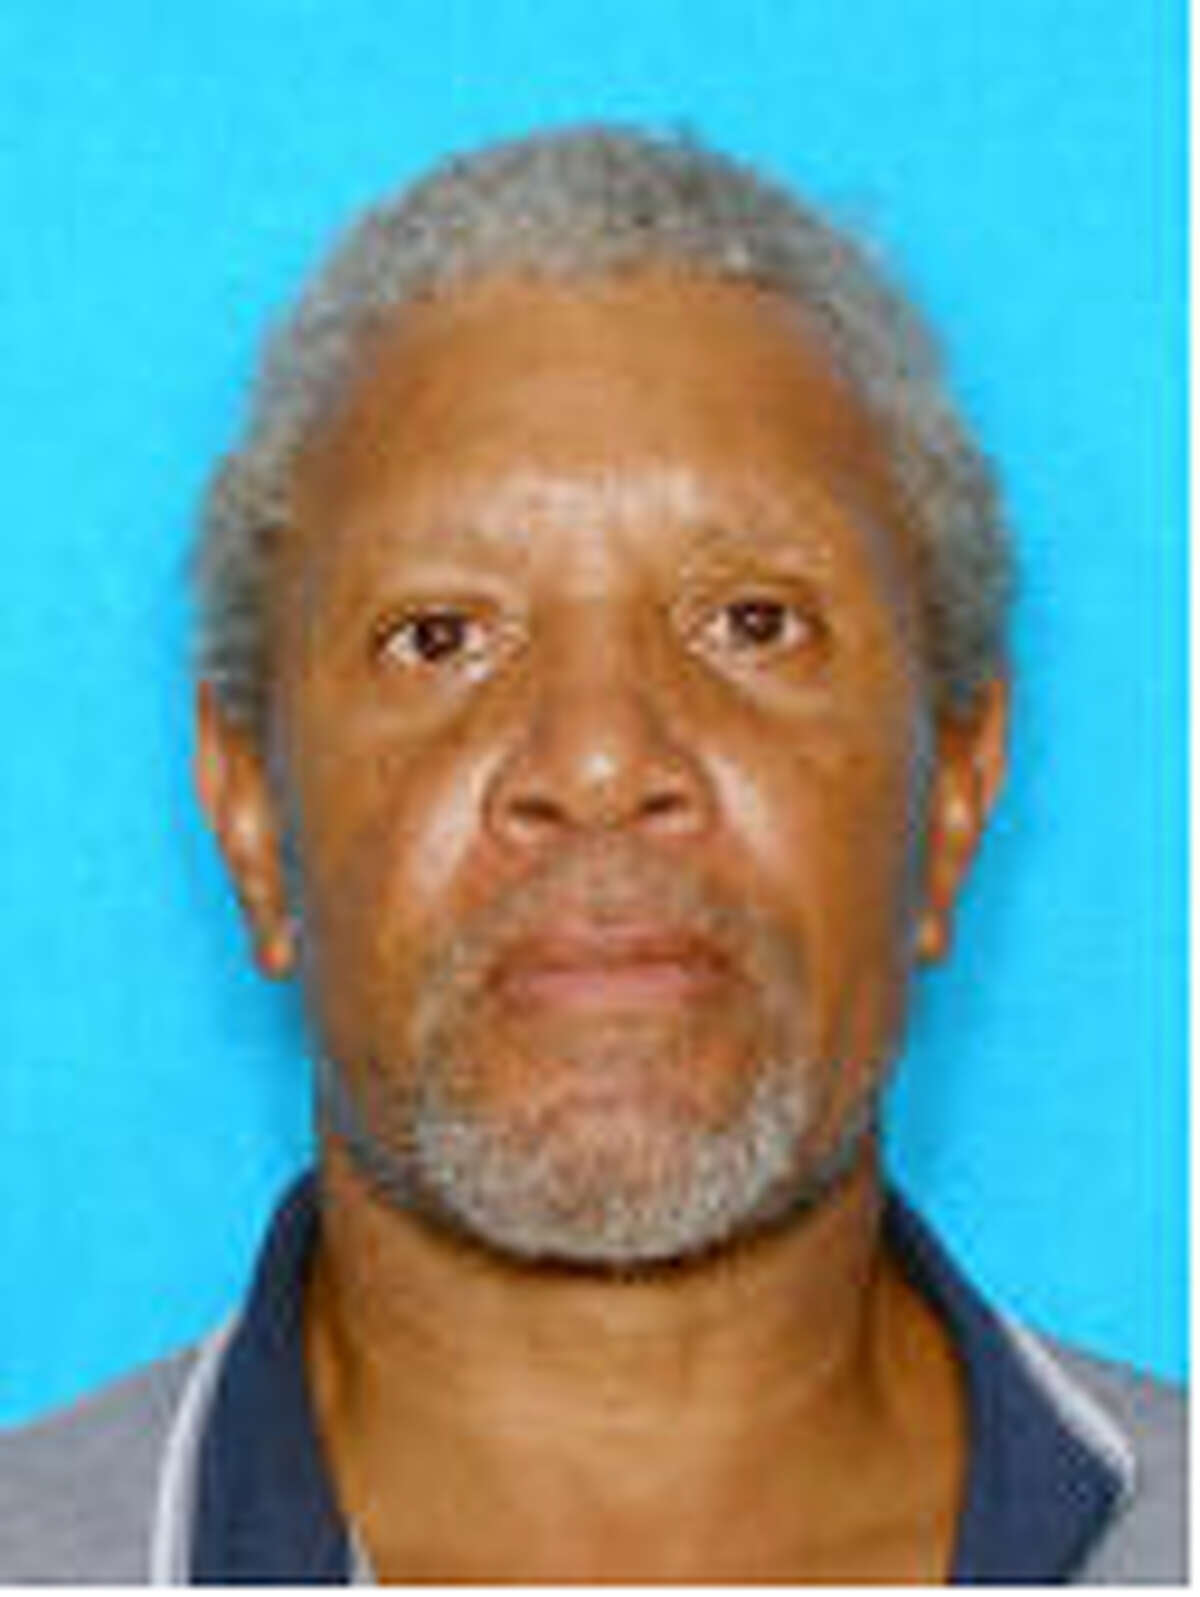 Terry Jackson, 60, is accused of fatally stabbing a retired Marine 15 times.